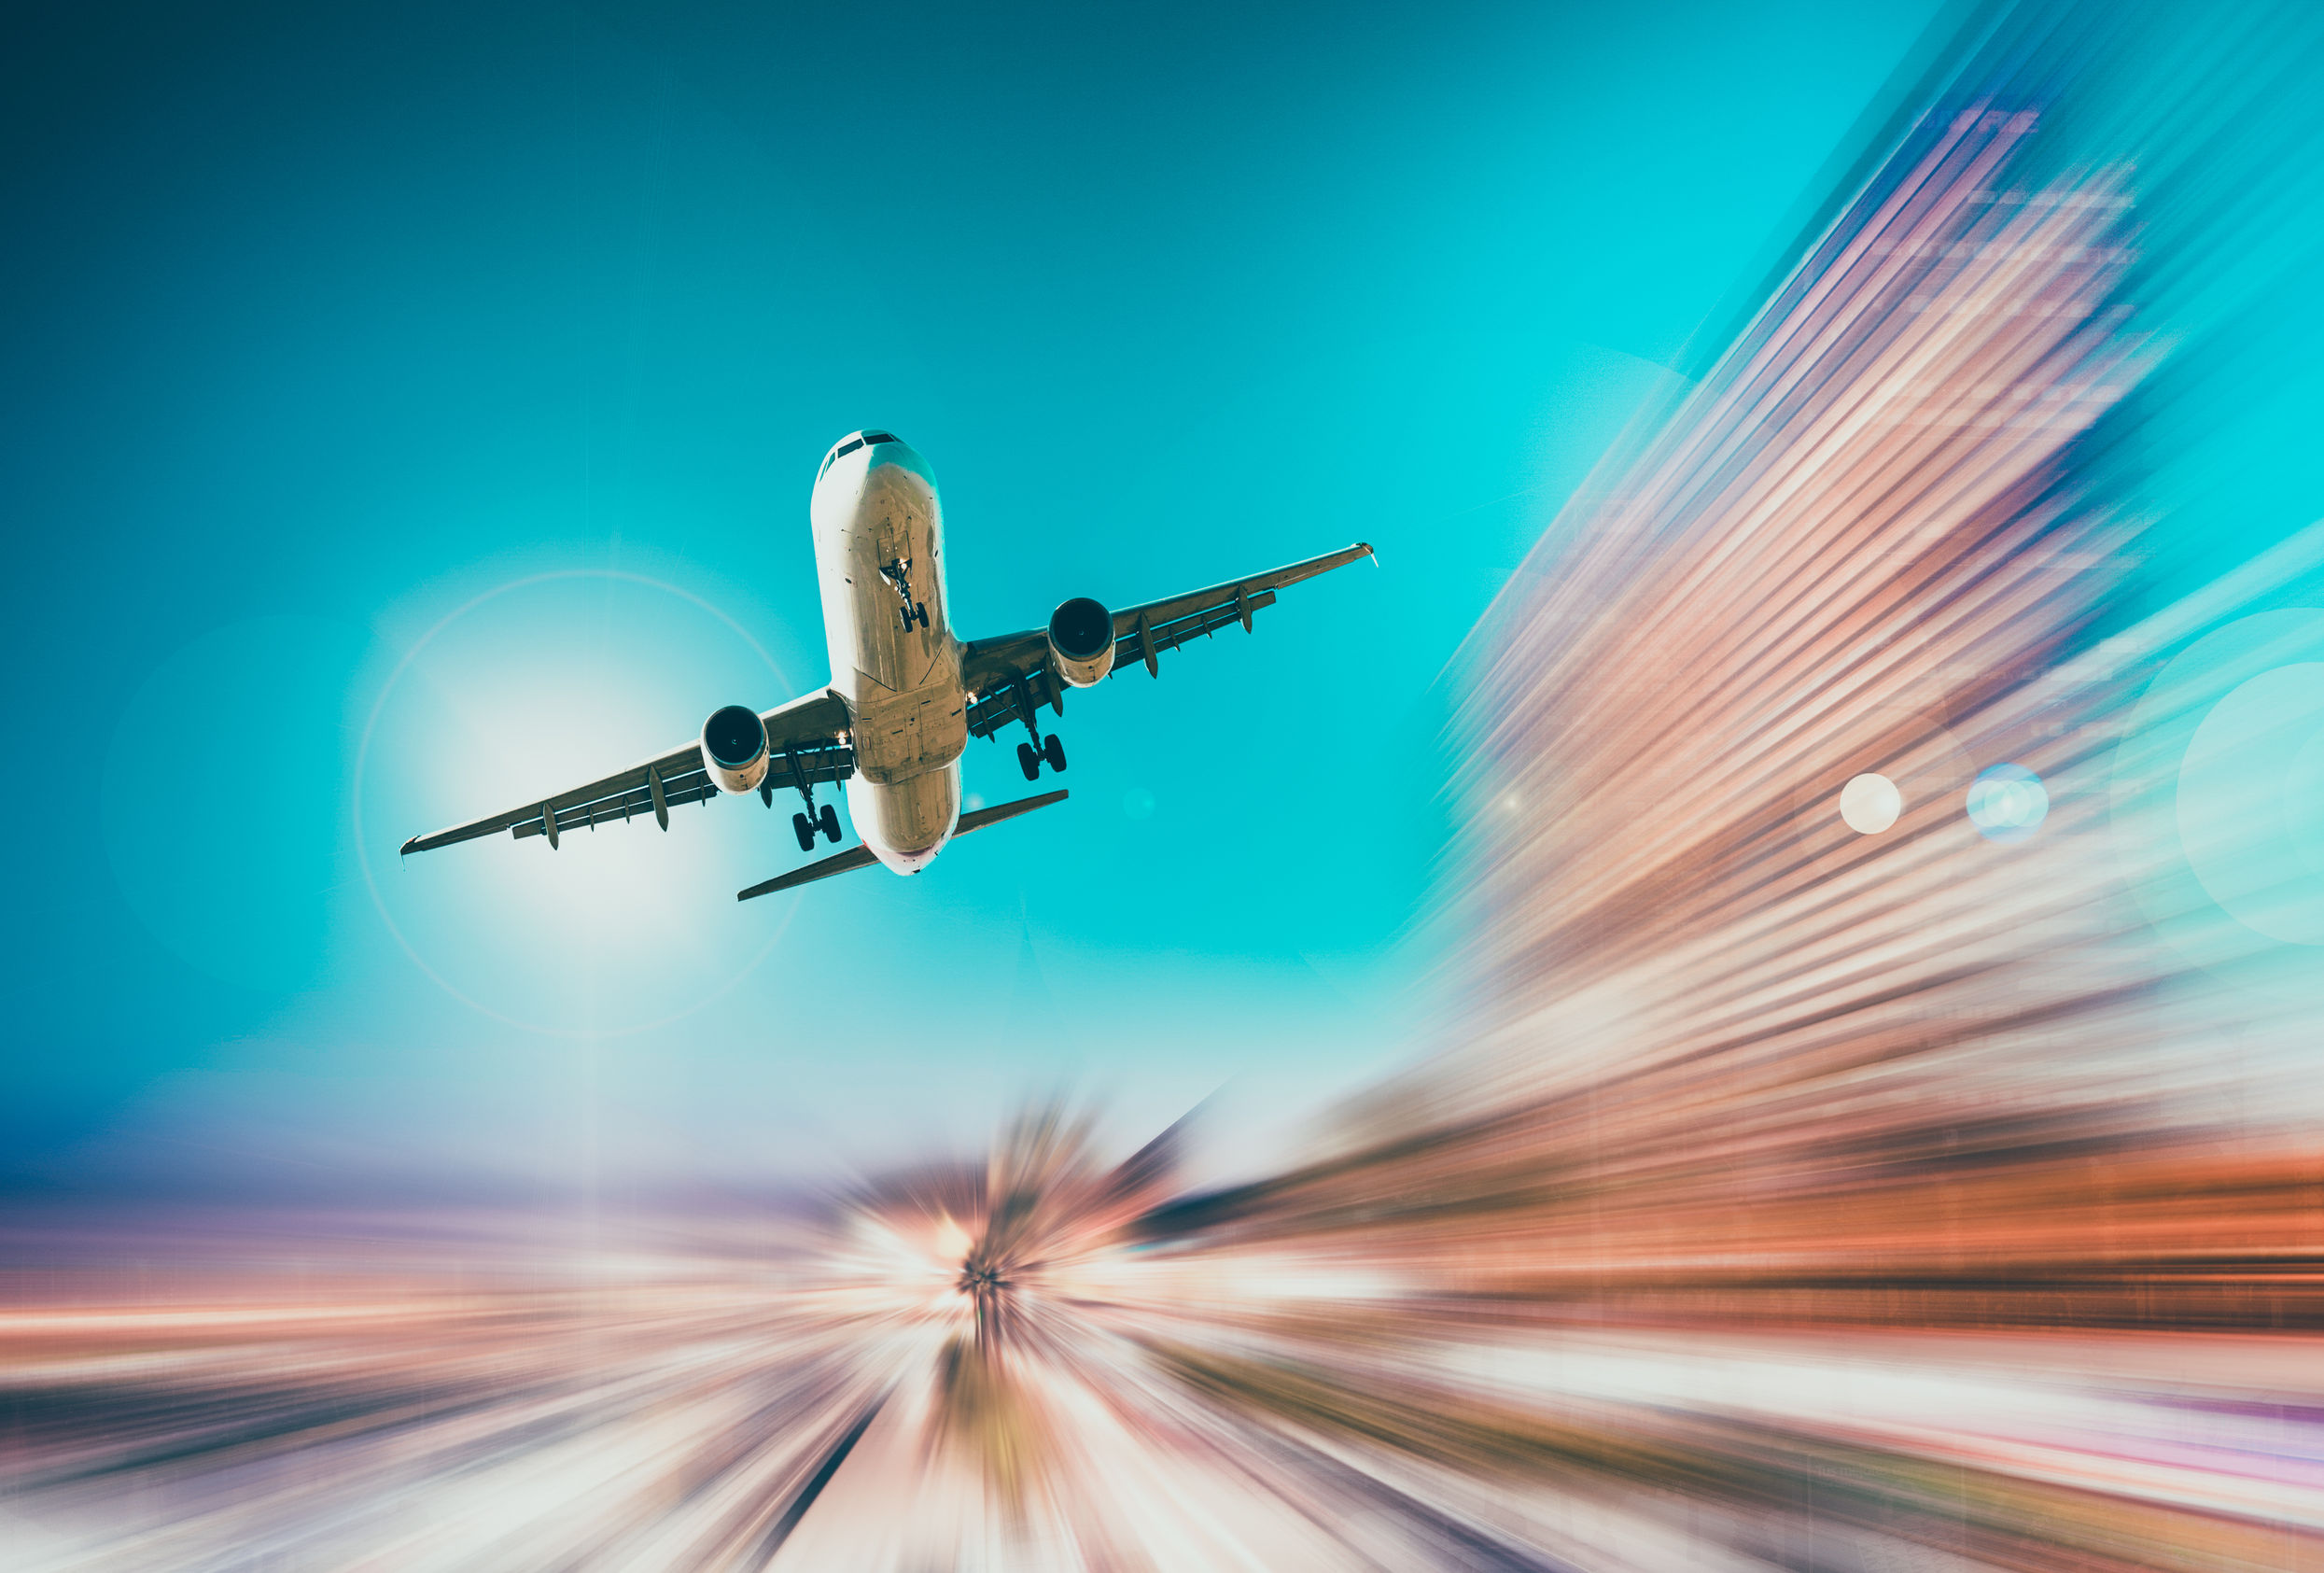 airliner in motion on background of high speed traveling in sky